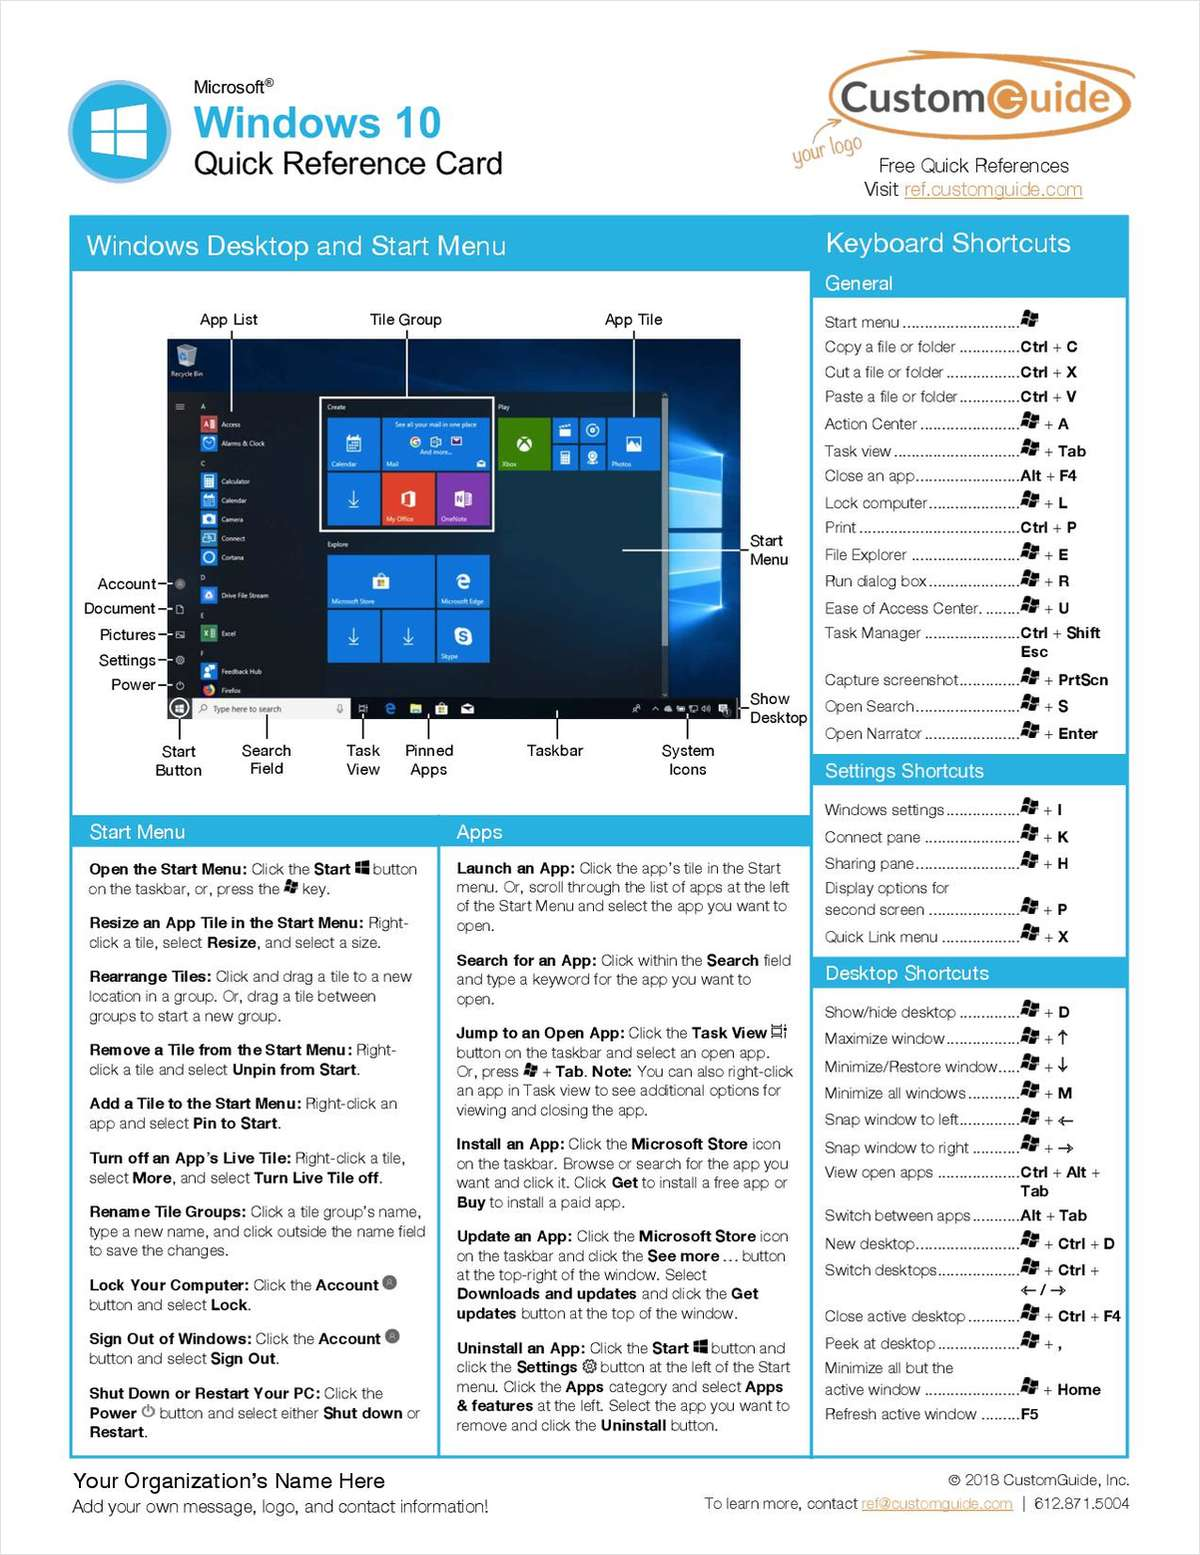 Microsoft Windows 10 - Quick Reference Card